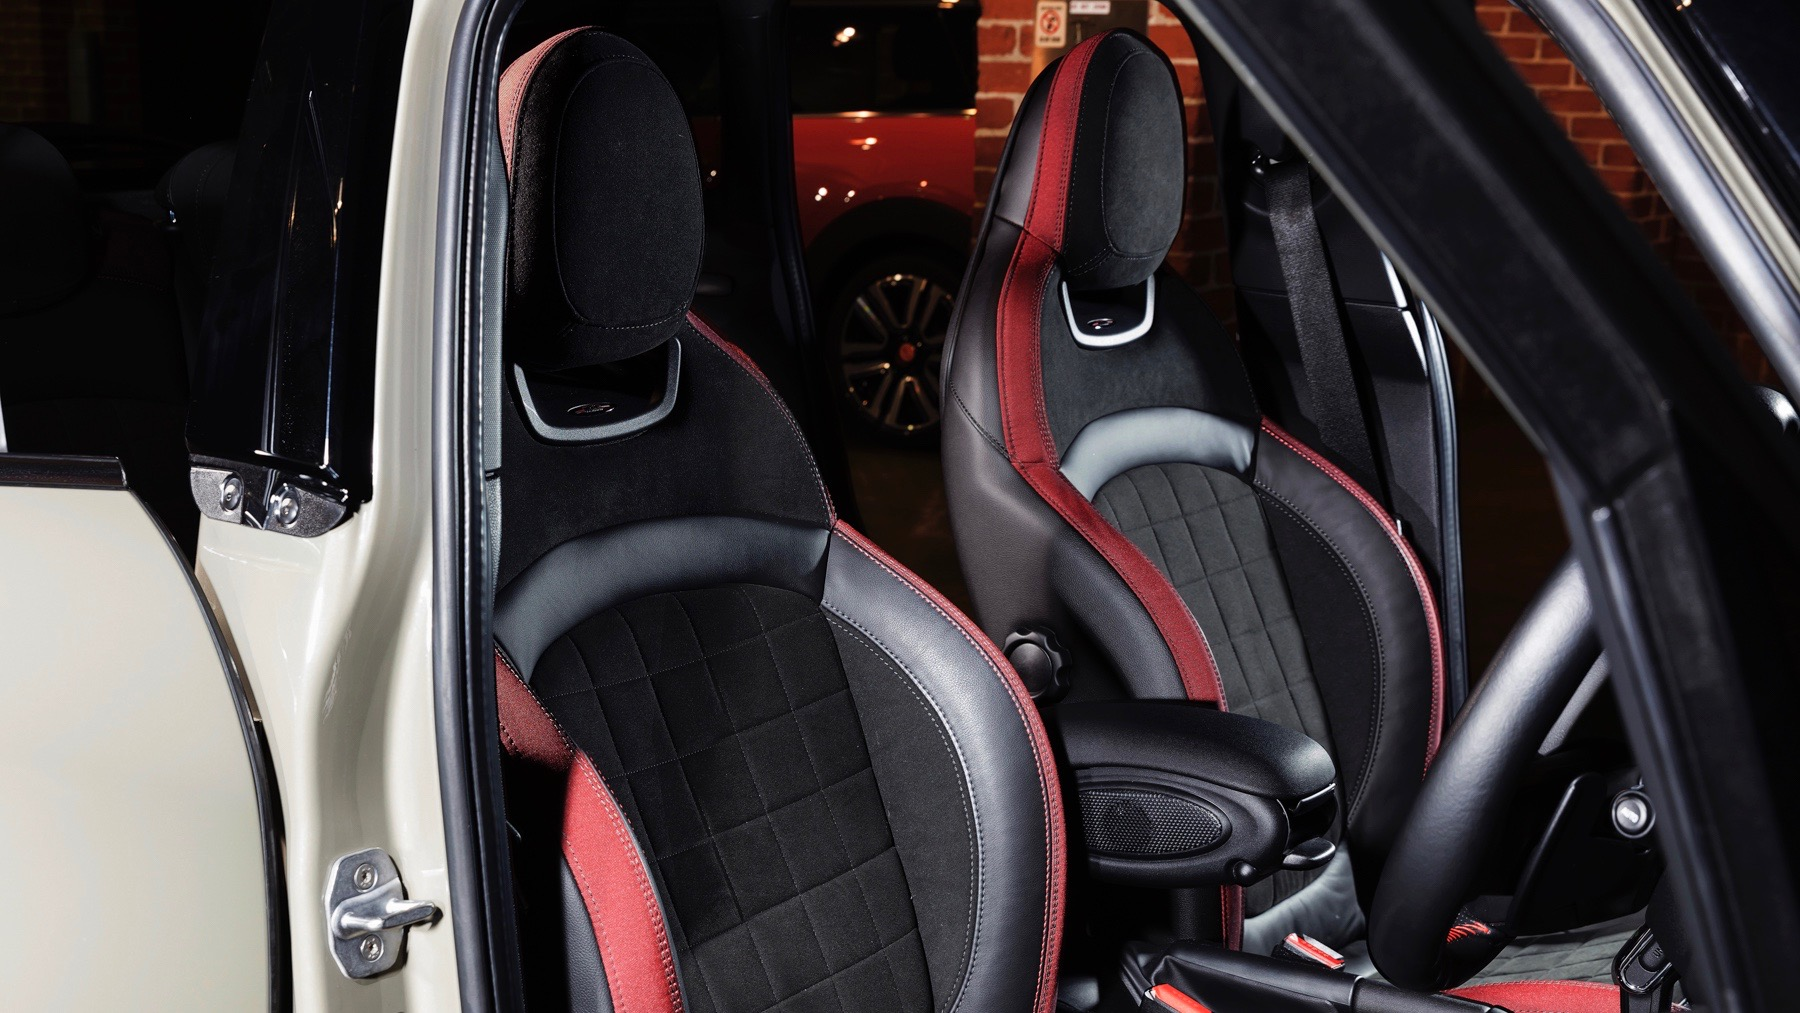 2018 MINI Cooper S JCW Sport Pack seats